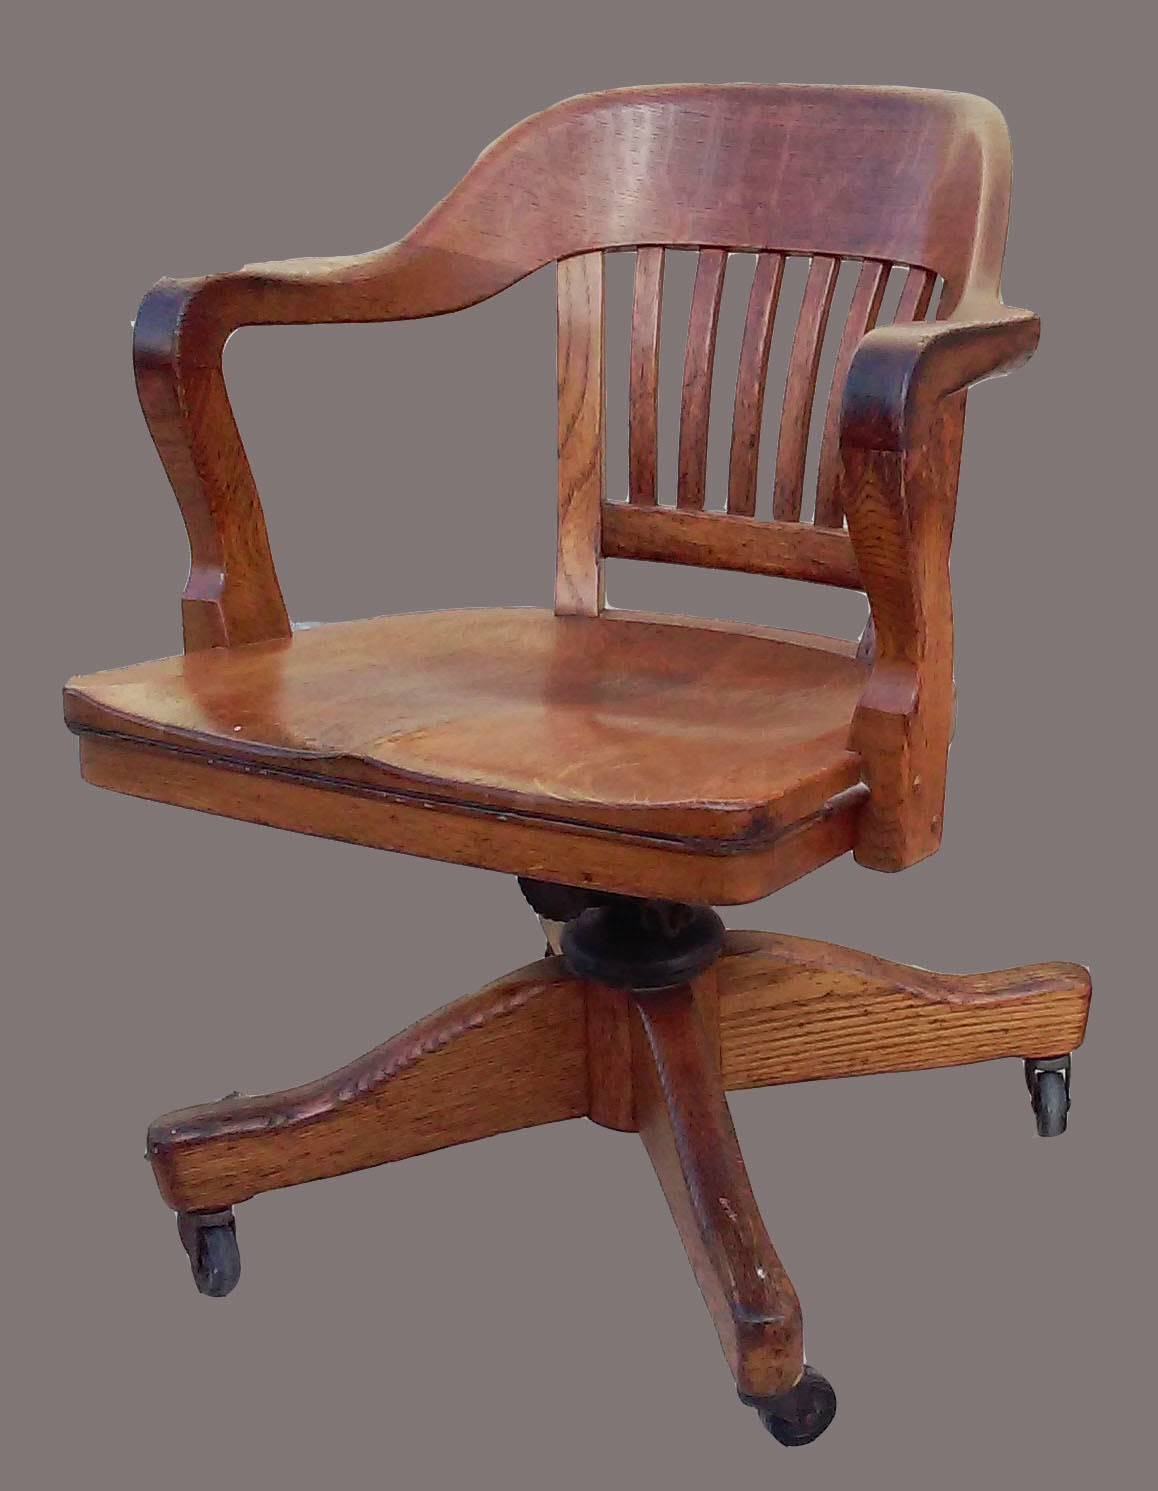 Uhuru Furniture & Collectibles: Oak Desk Chair with Wheels ...